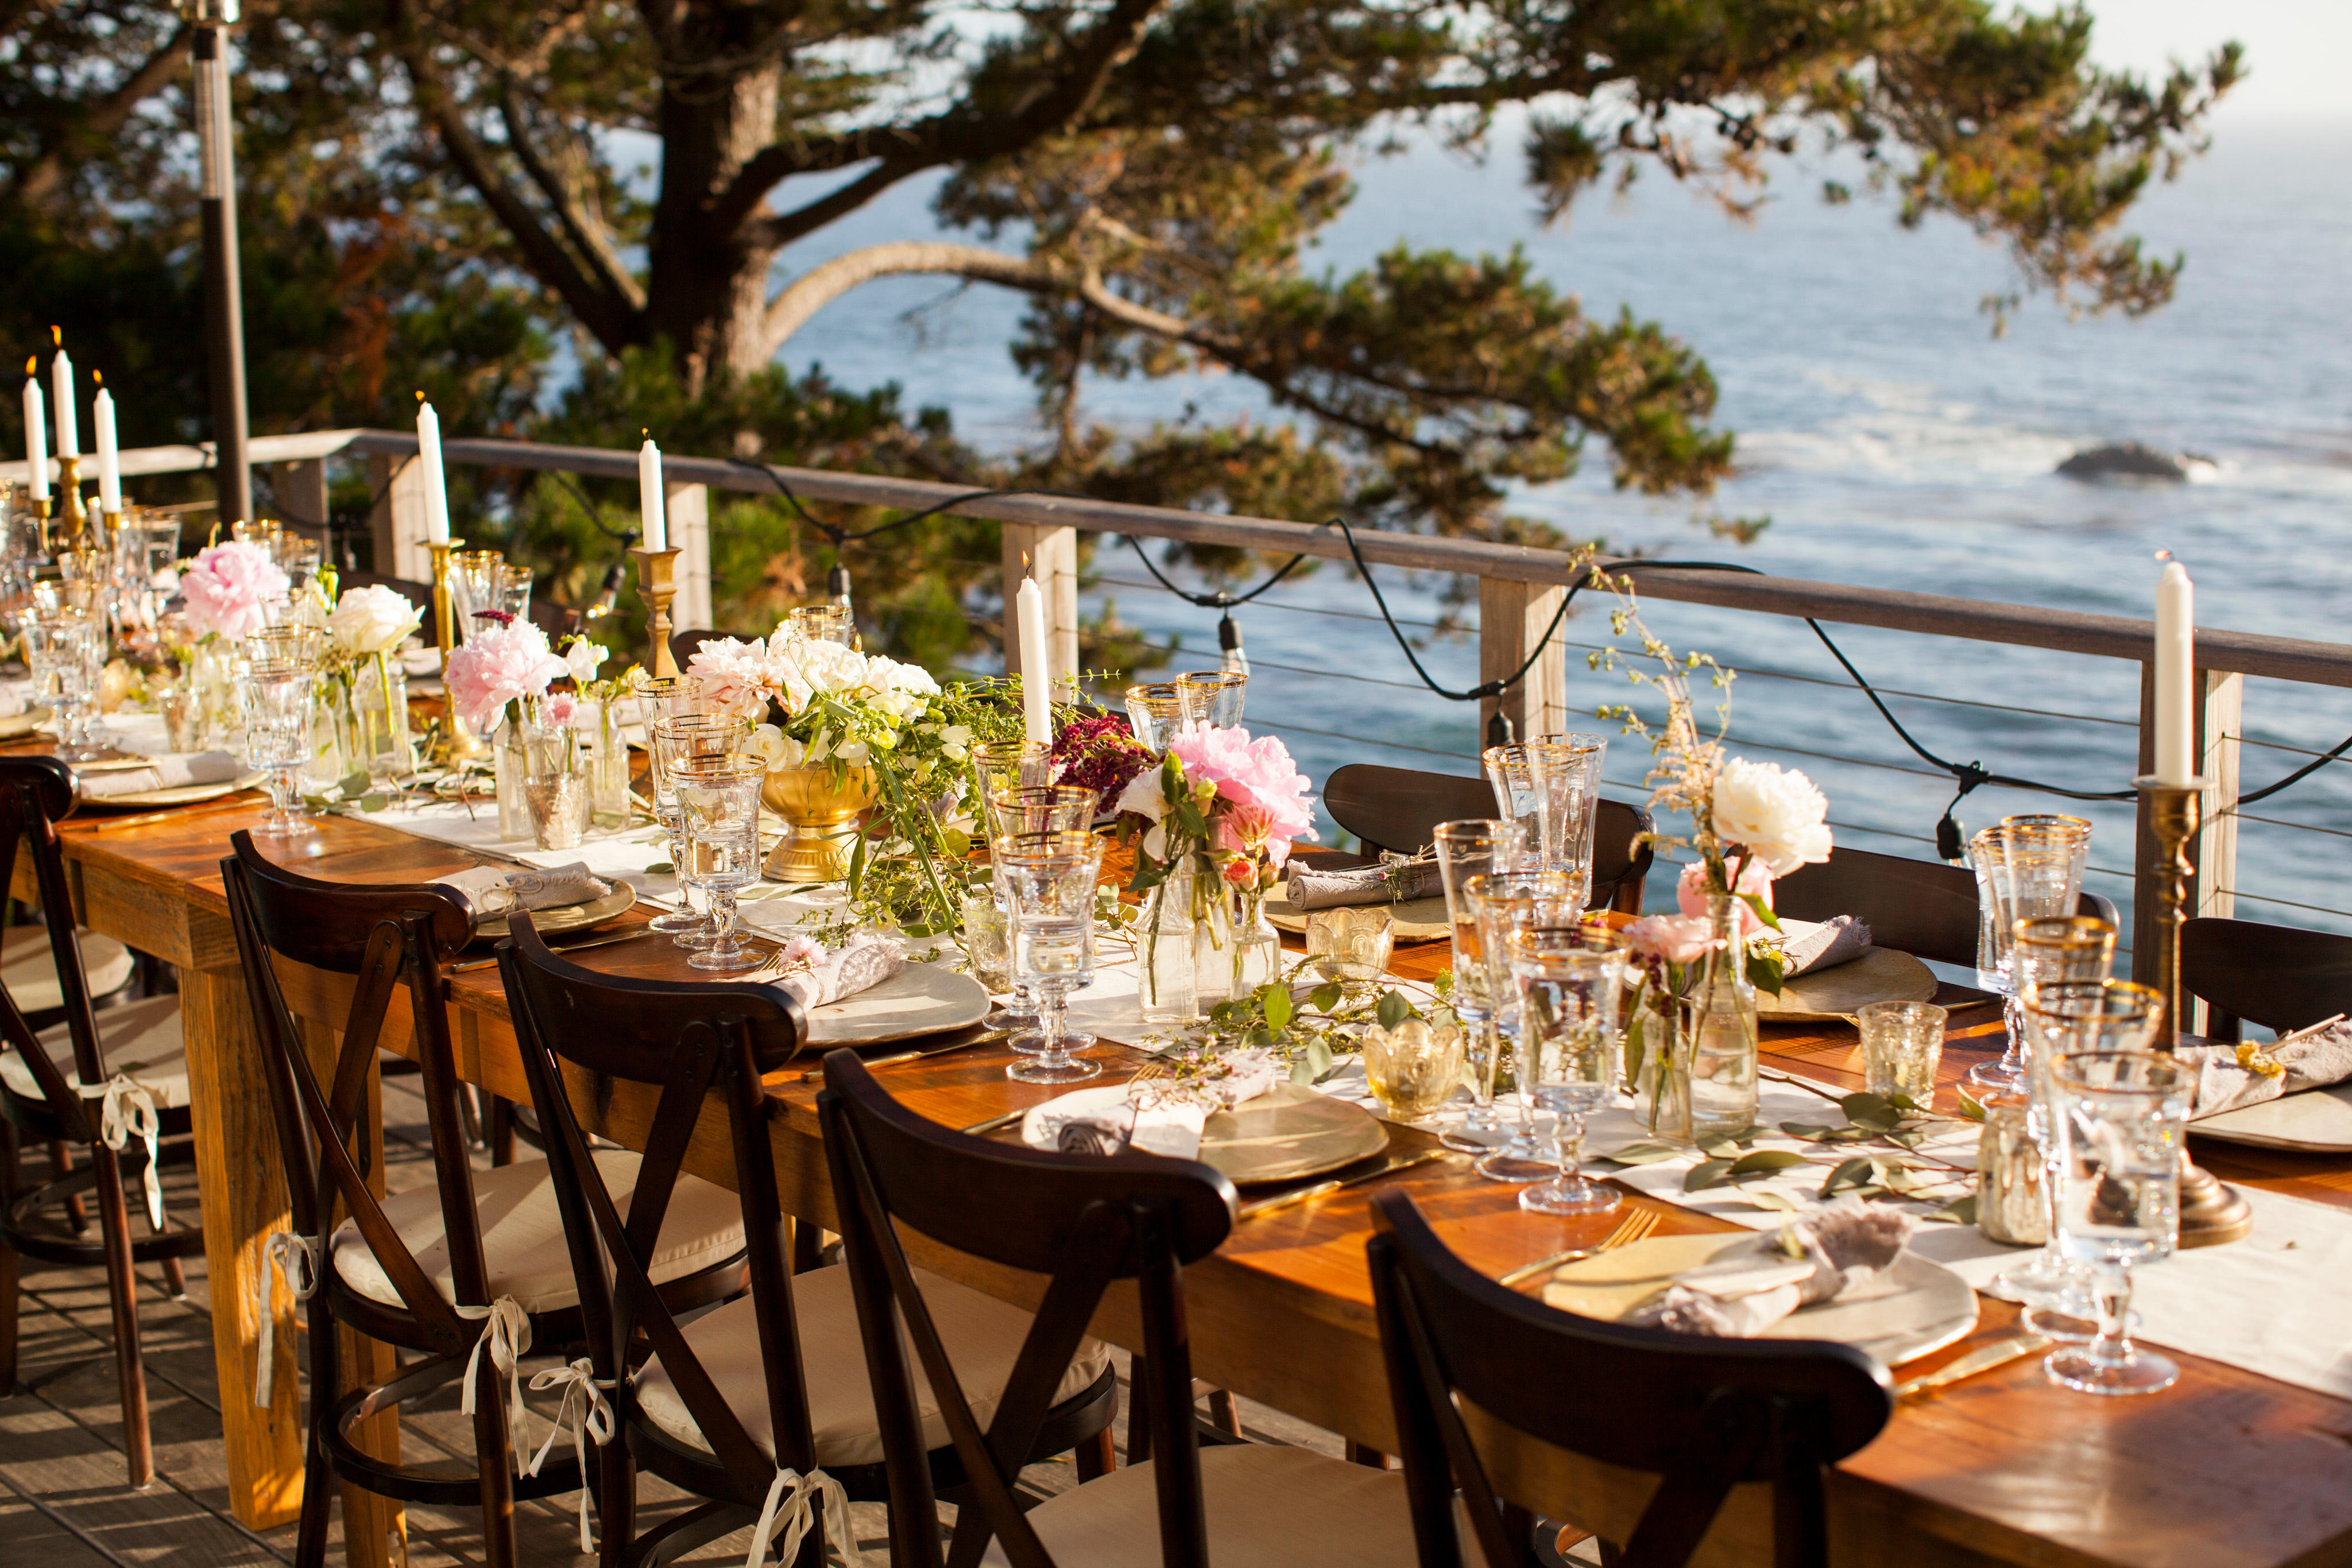 Sea Stars Catering & Events image 4